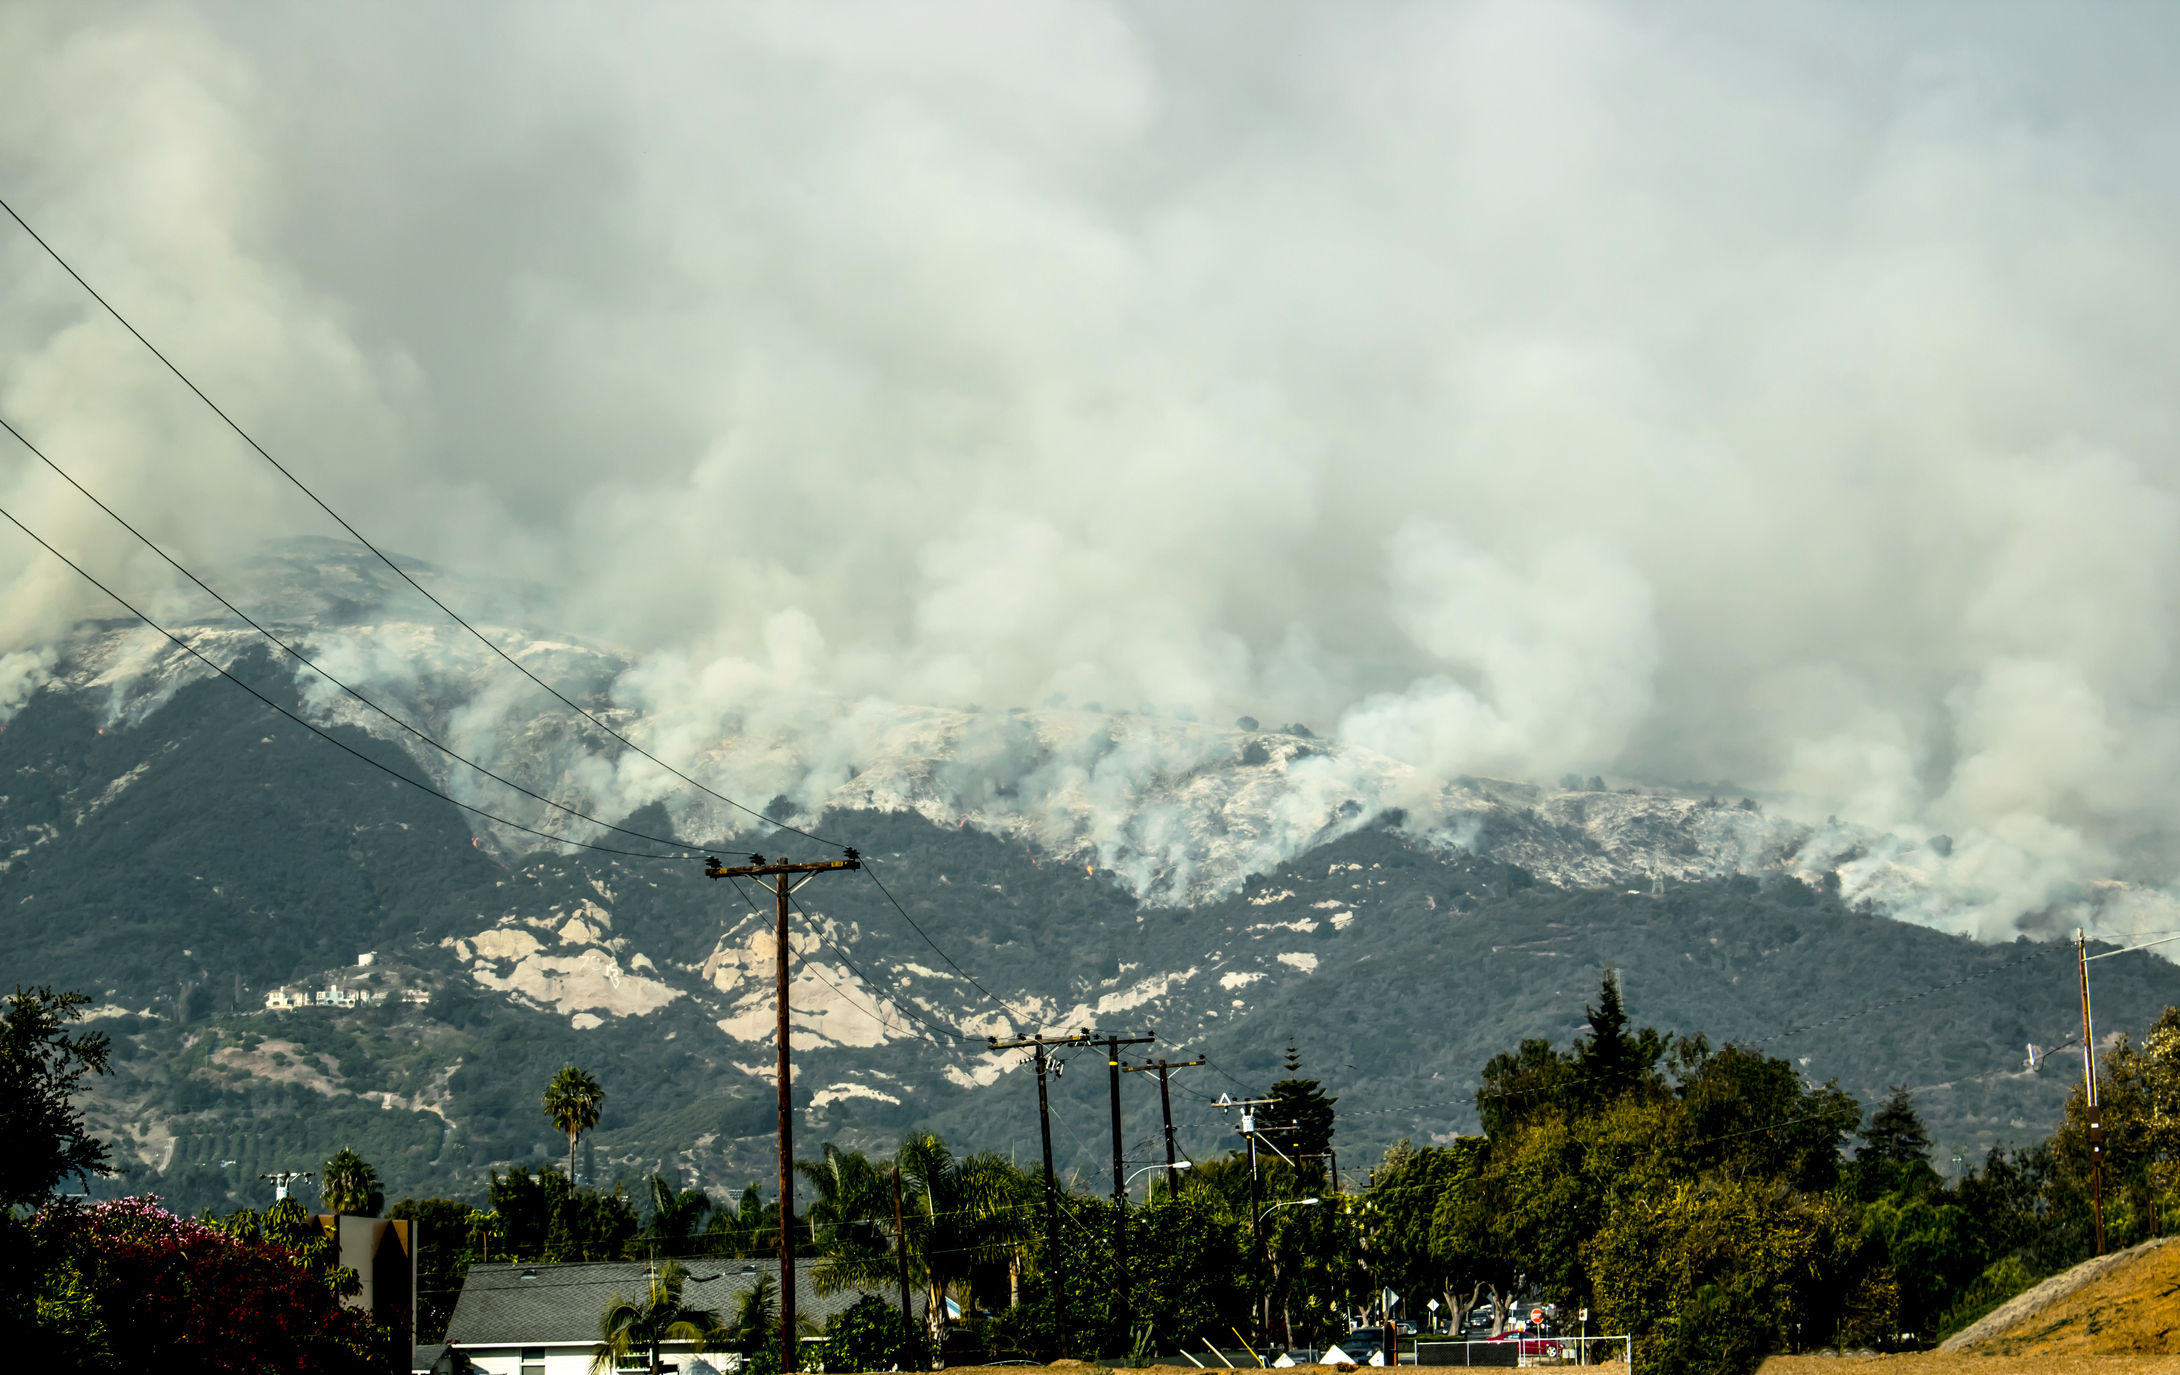 A picture showing a burning mountain side with smoke billowing into the air.